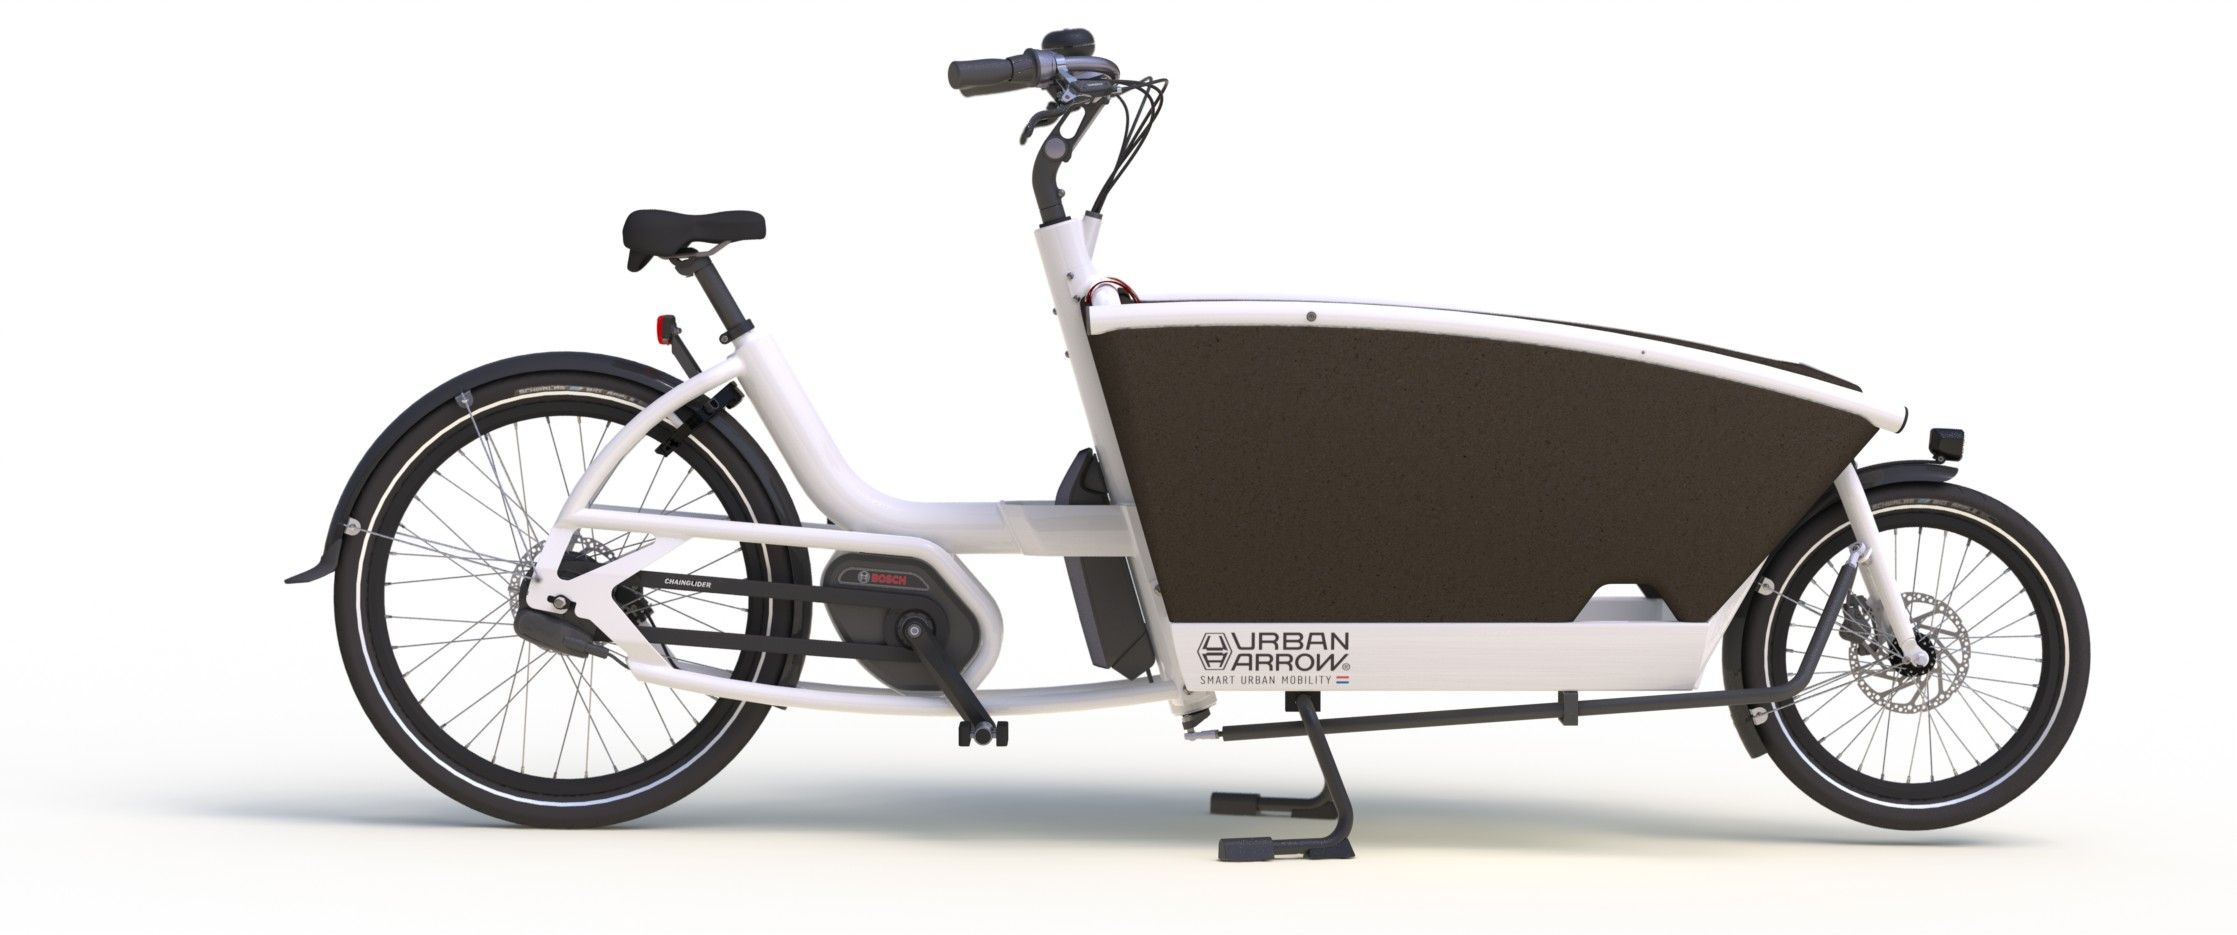 The Urban Arrow Family  - a purpose built modular family electric bike